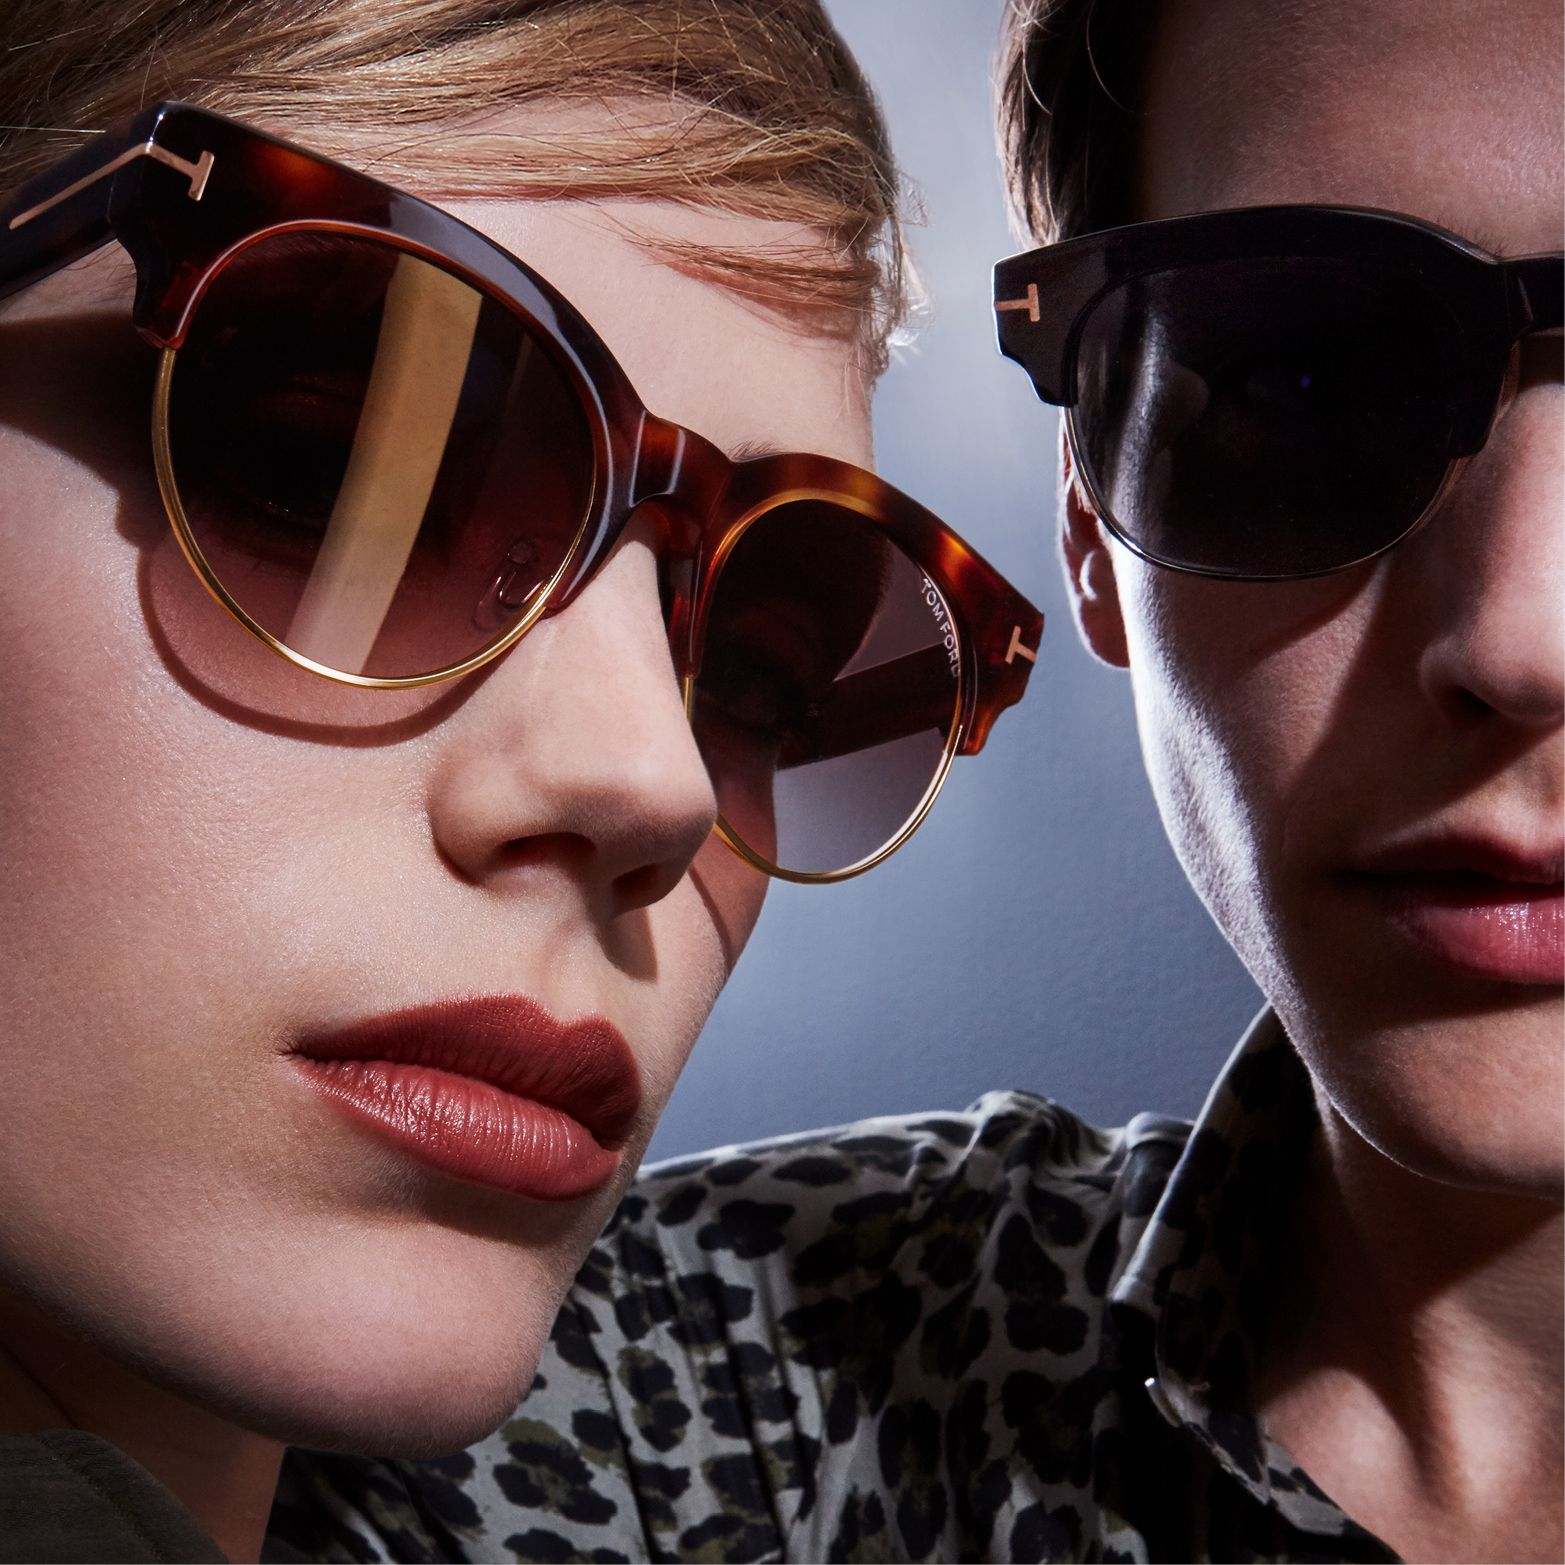 3014b46b48 Iconic TOM FORD Sunglasses featuring the Henri Sunglasses.  TOMFORD